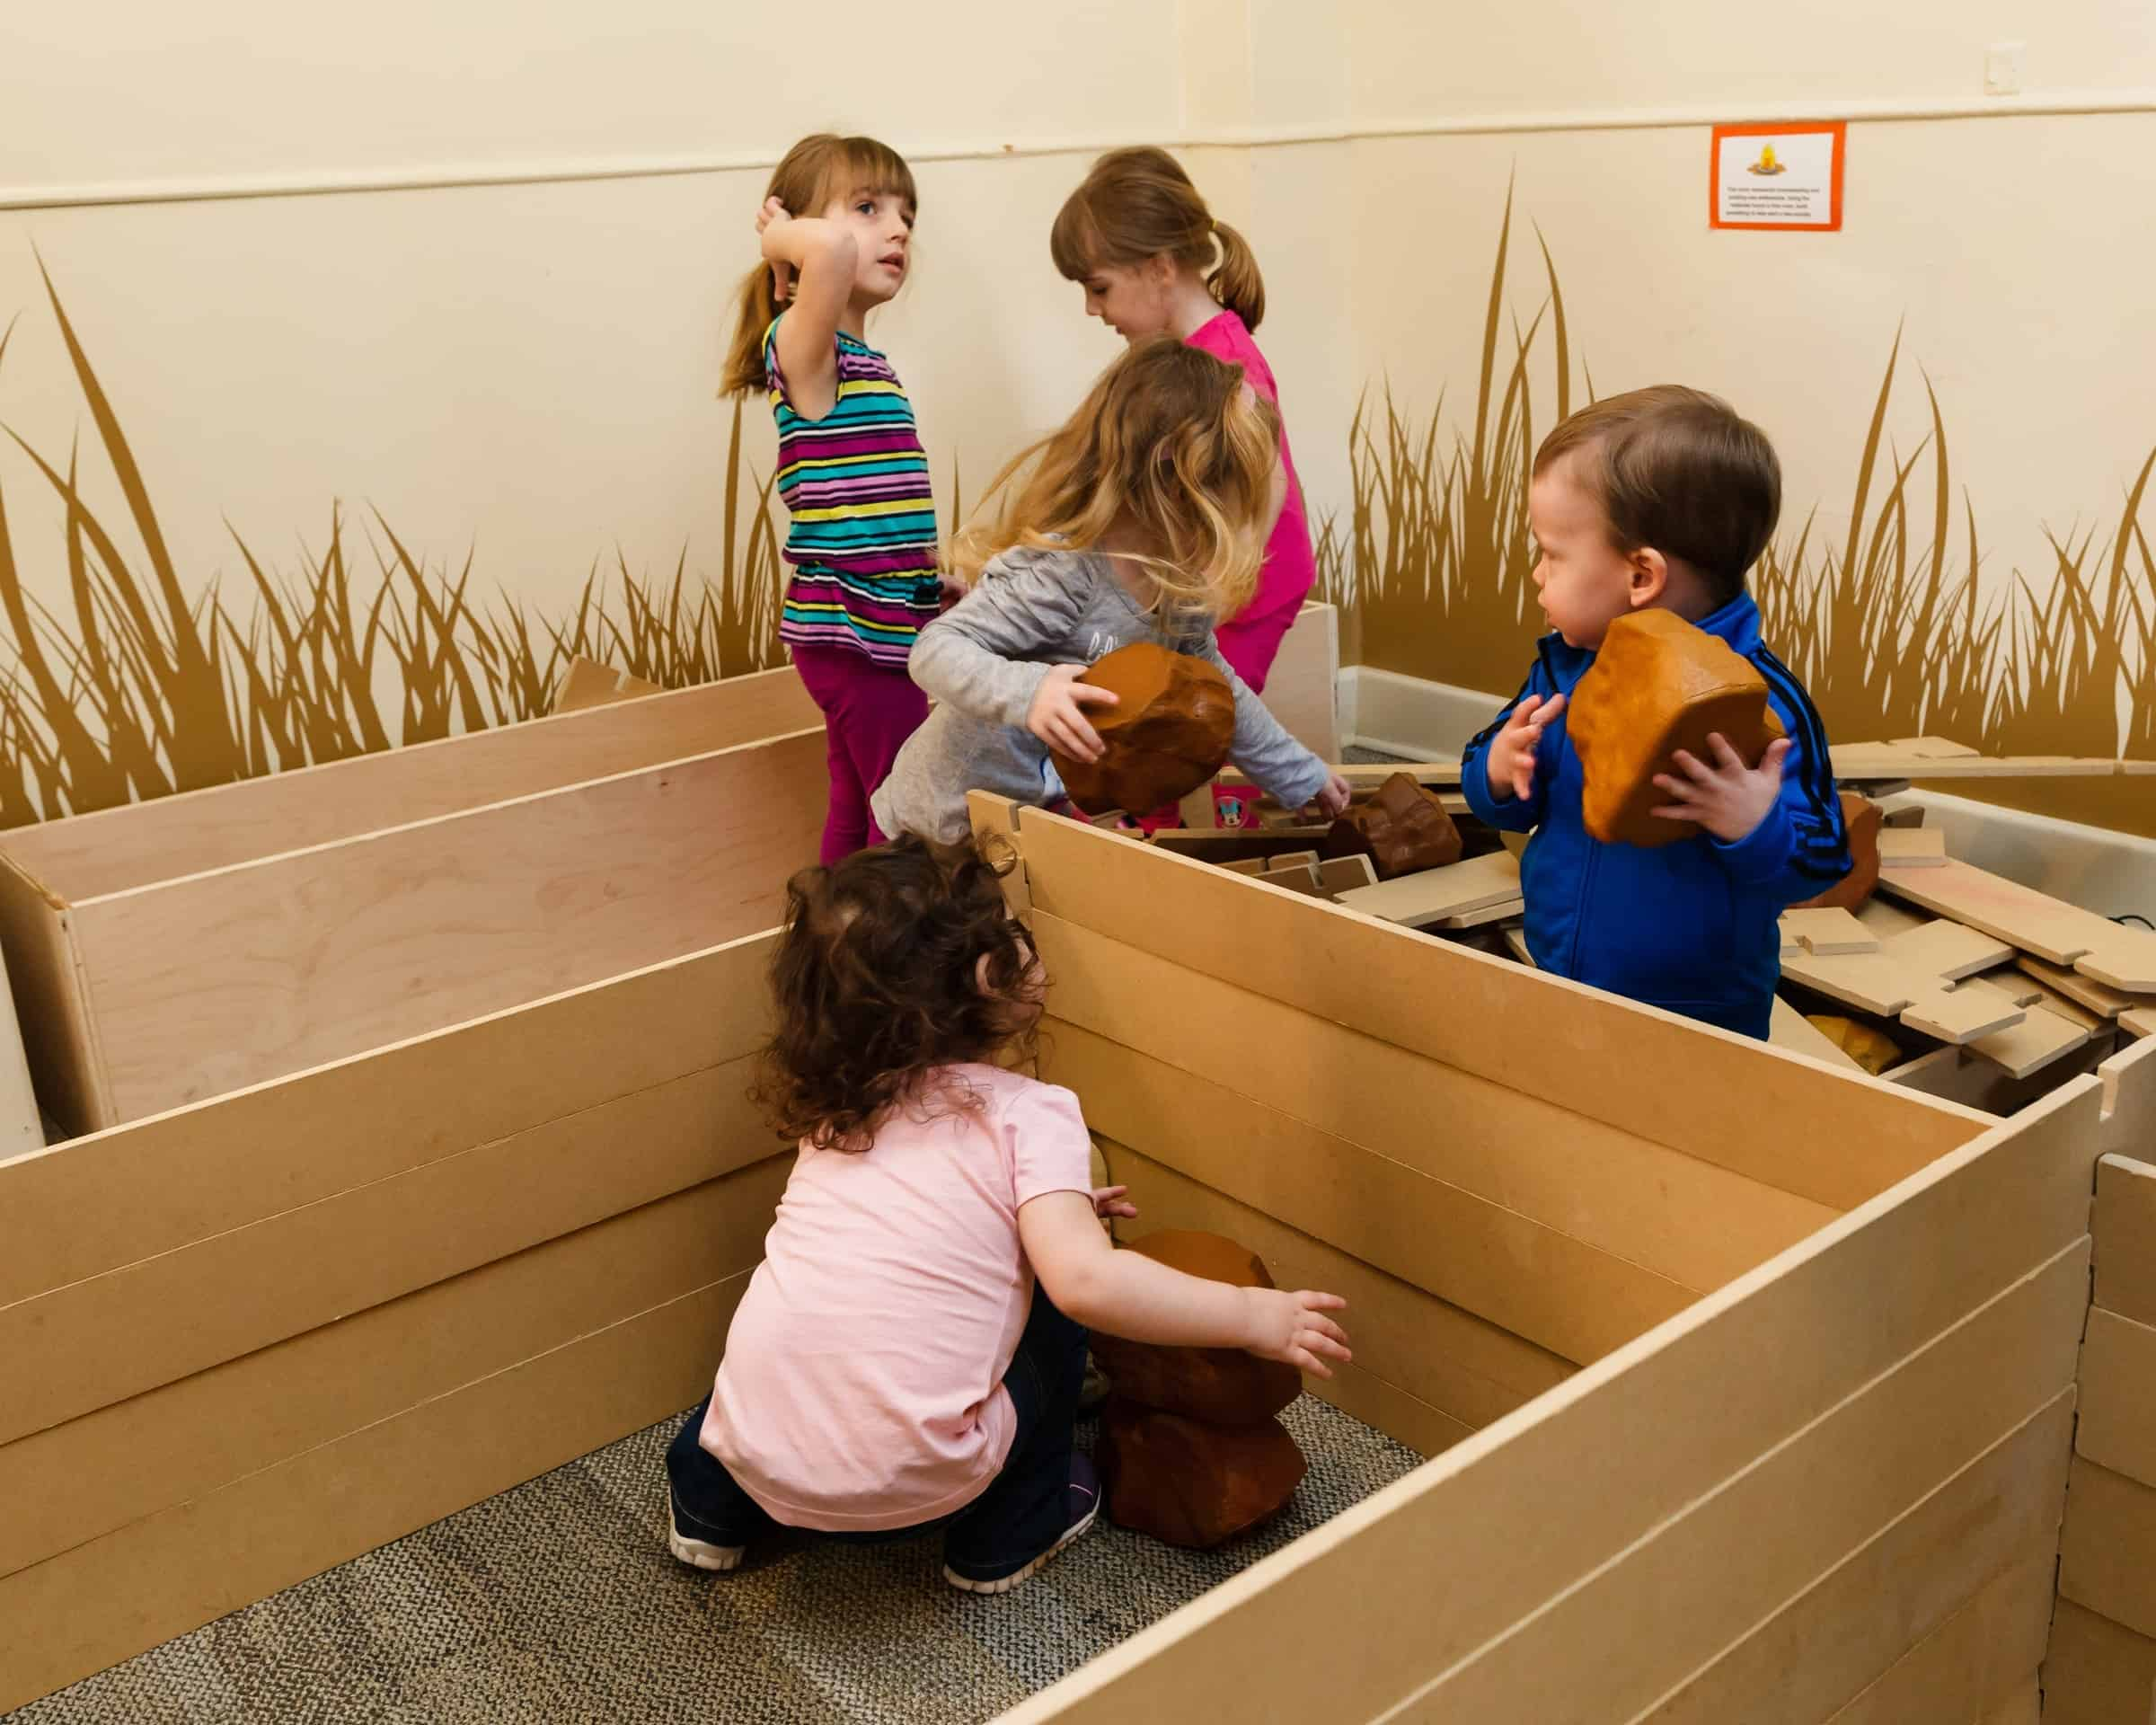 Children playing with museum toys